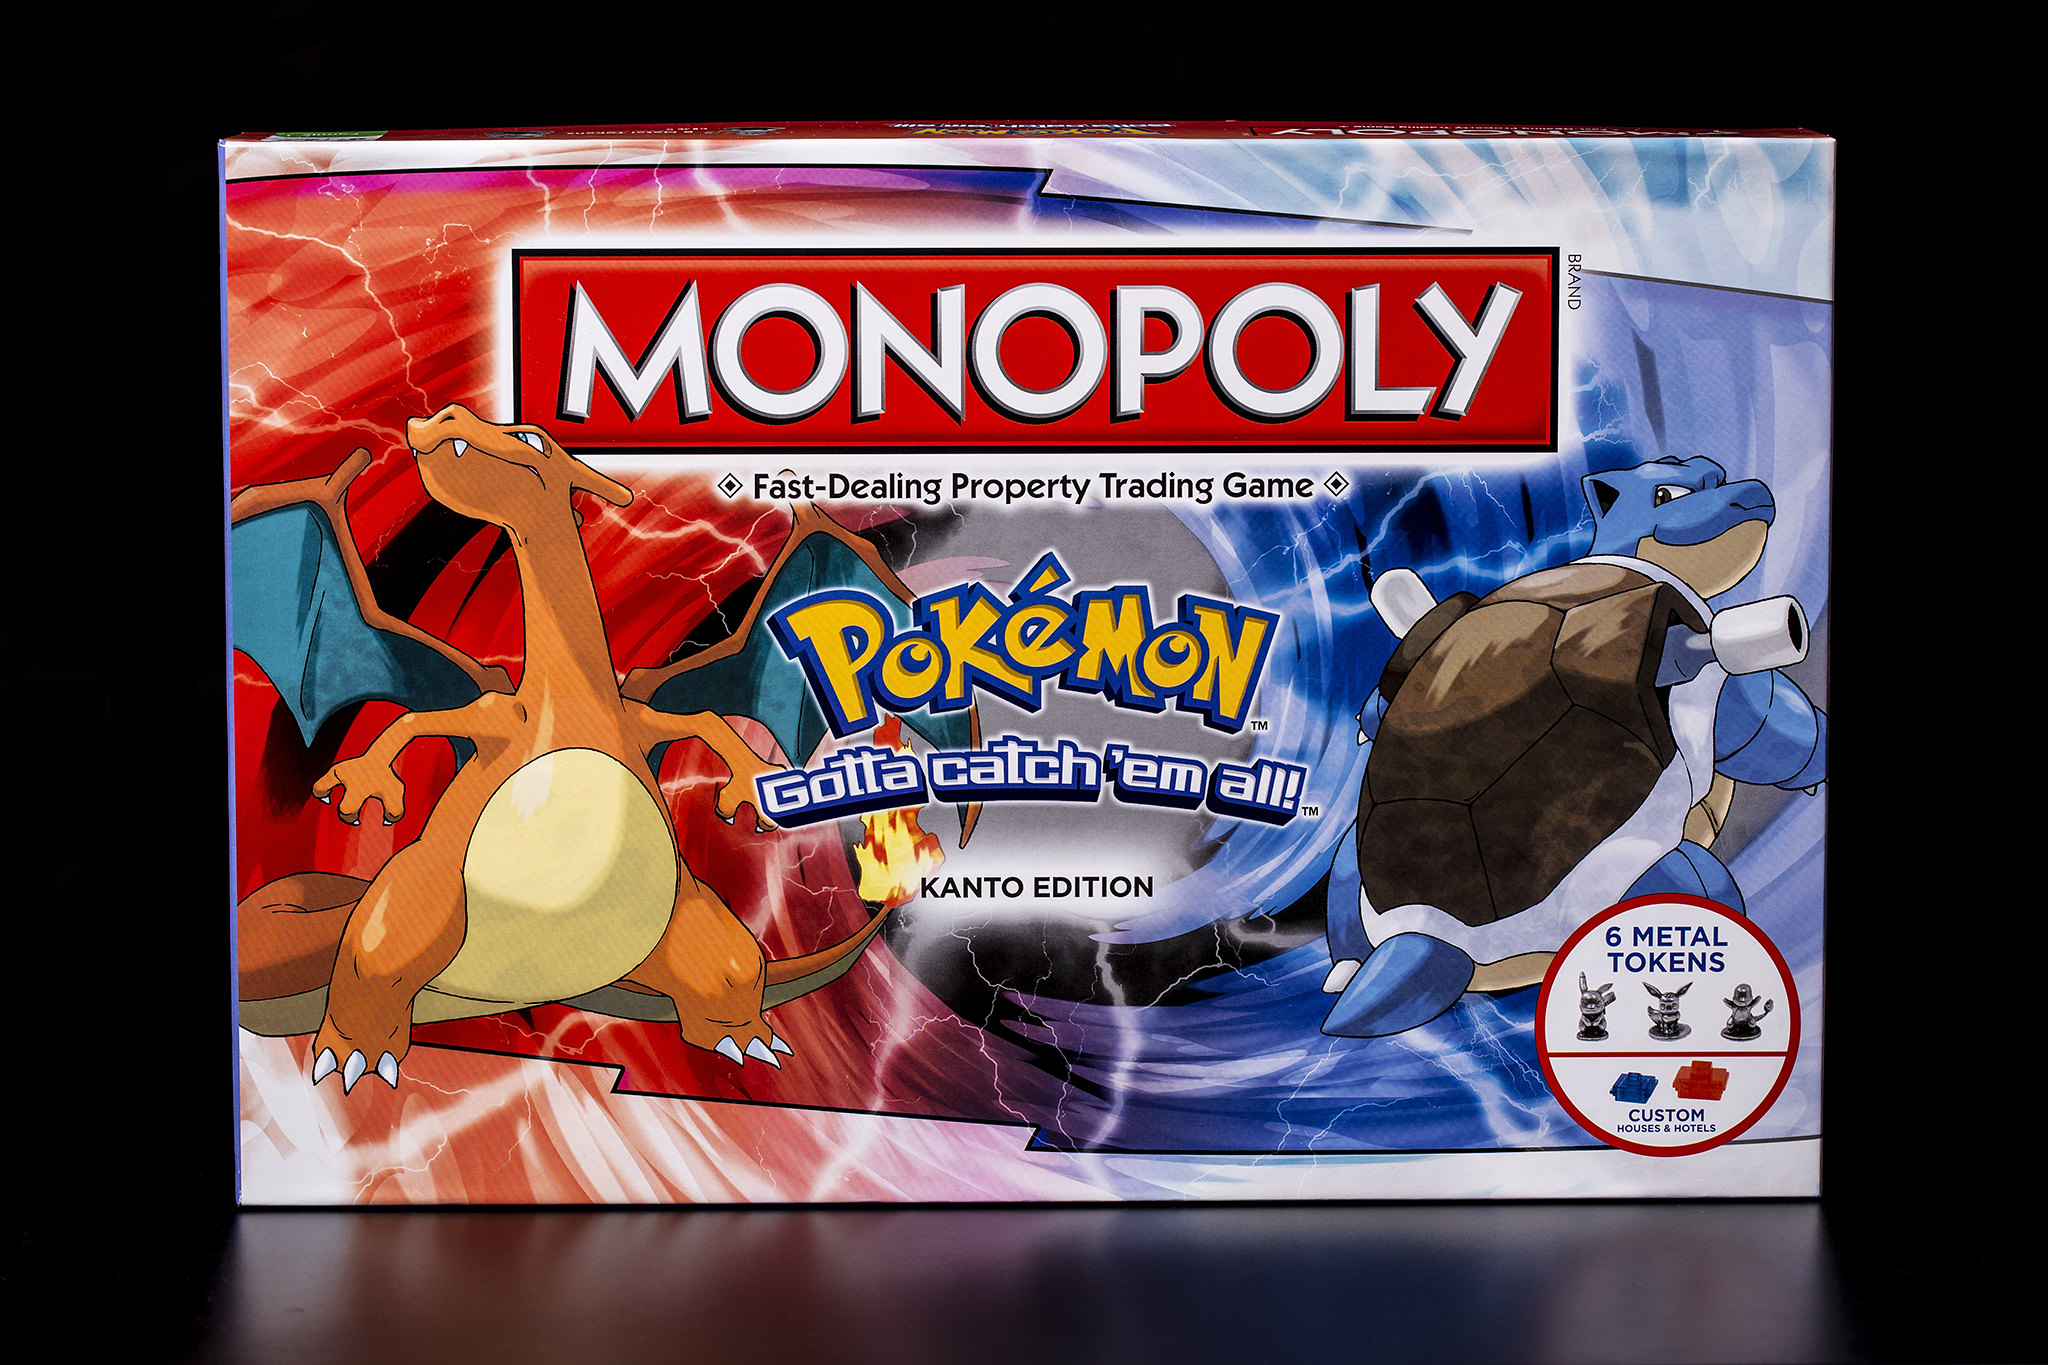 The box front cover for Monopoly Pokémon: Kanto Edition. The cover is half red and half blue, with Charizard and Blastoise depicted in each half.